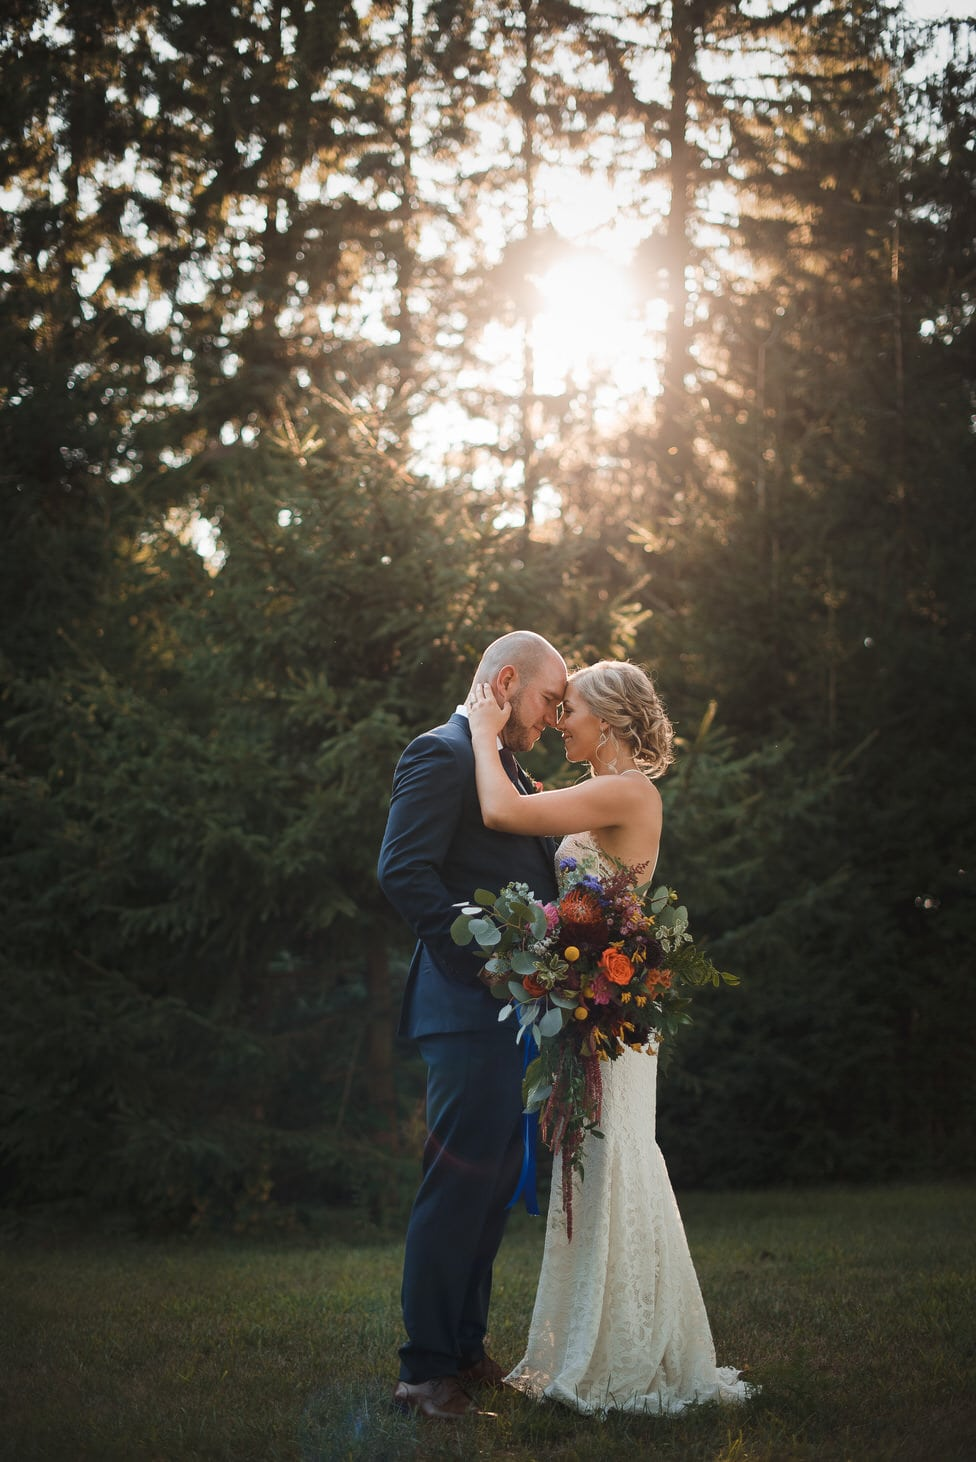 newlyweds stand in golden hour light coming through trees